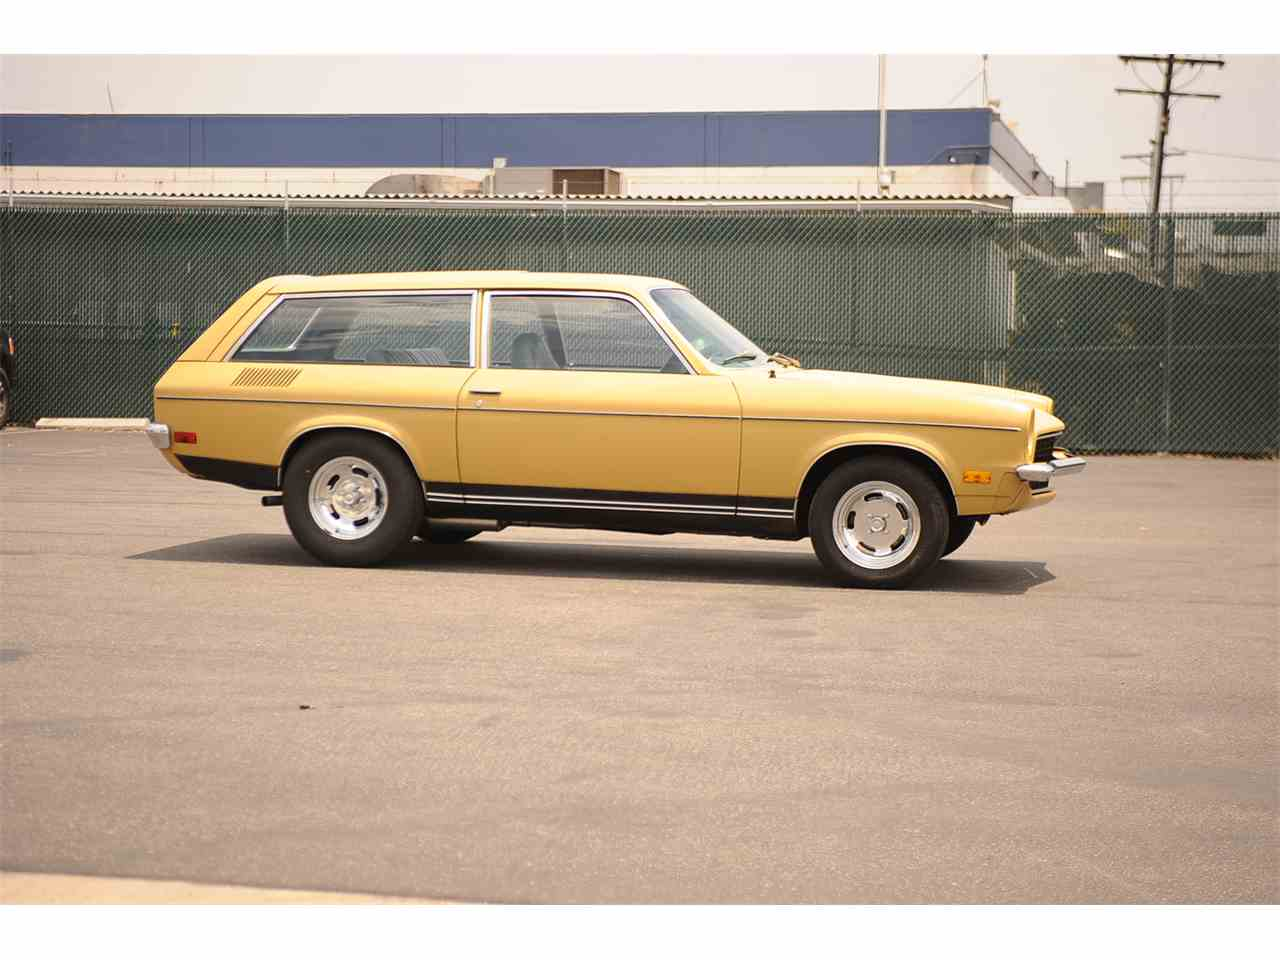 Large Picture of Classic 1973 Chevrolet Vega - $17,500.00 Offered by a Private Seller - LFY9